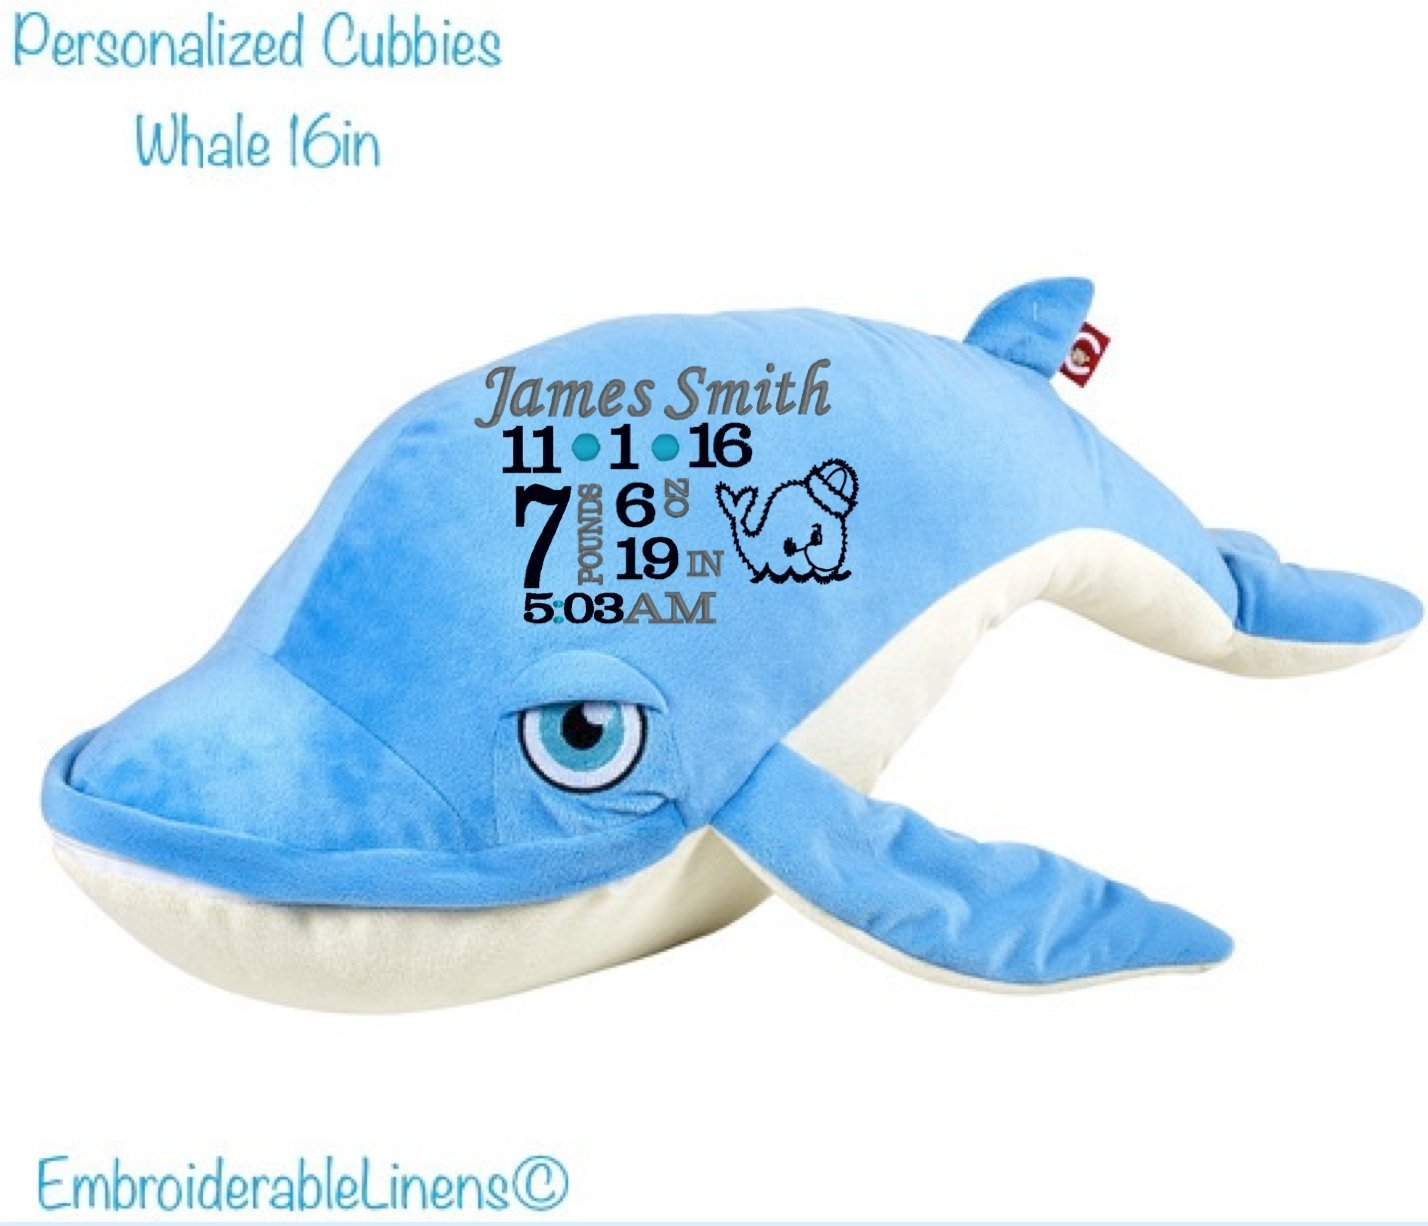 Amazon: Cubbies Whale Birth Facts Stuffed Animal Baby Keepsake: Handmade